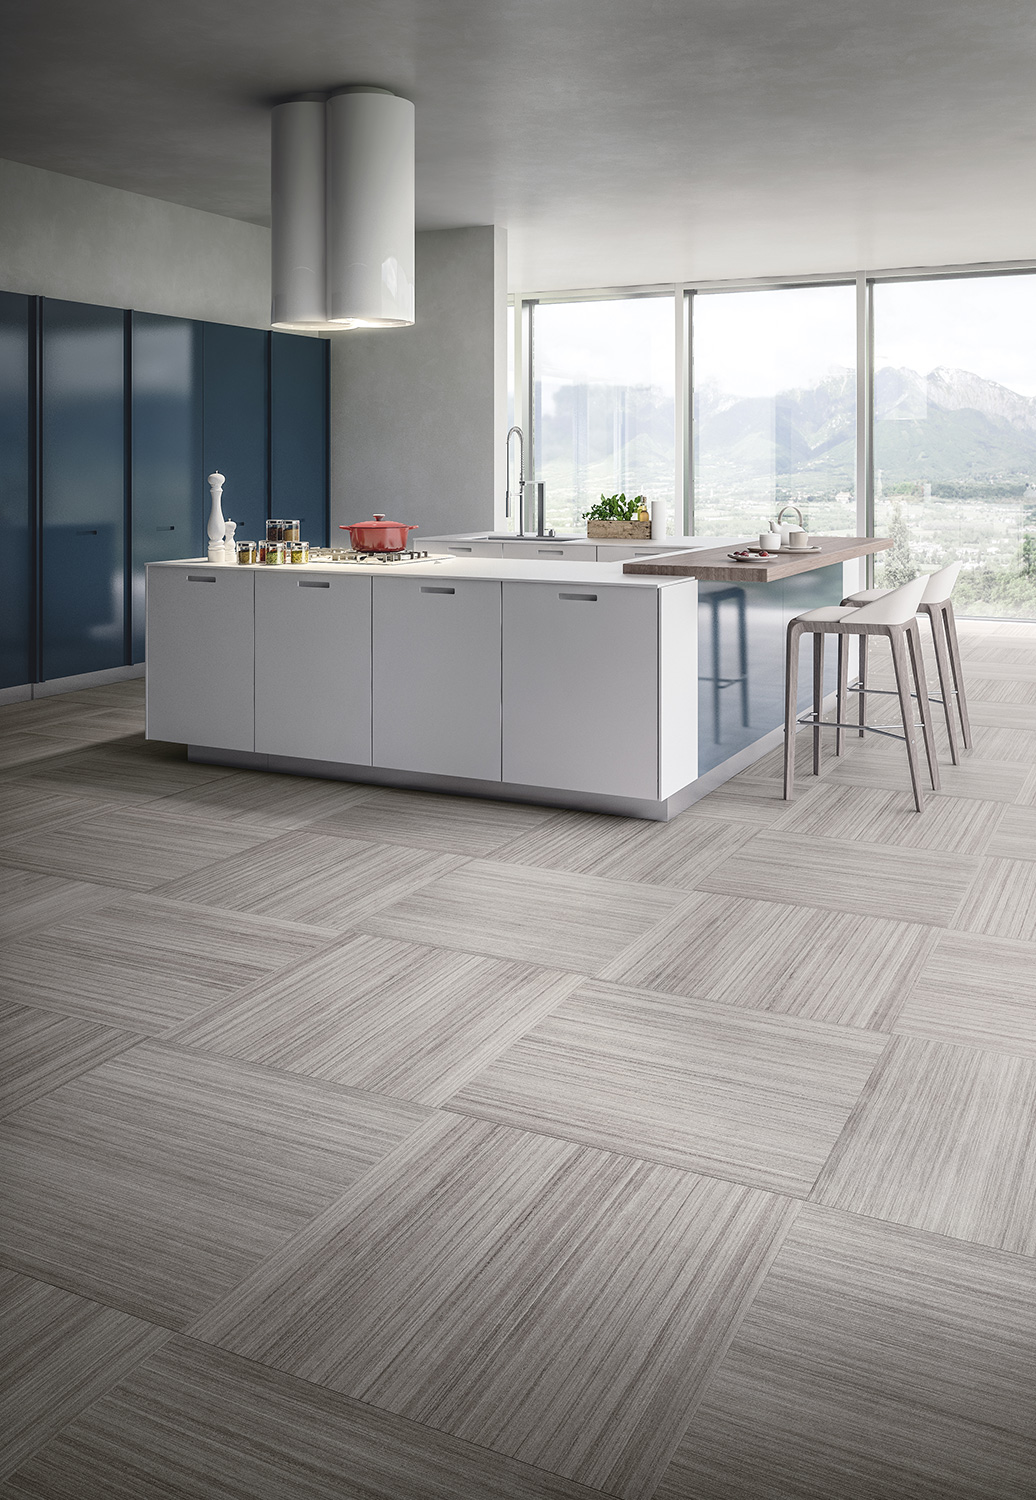 Natursteinoptik Stone Look Porcelain Tiles | Natural Stone Look | Stonica